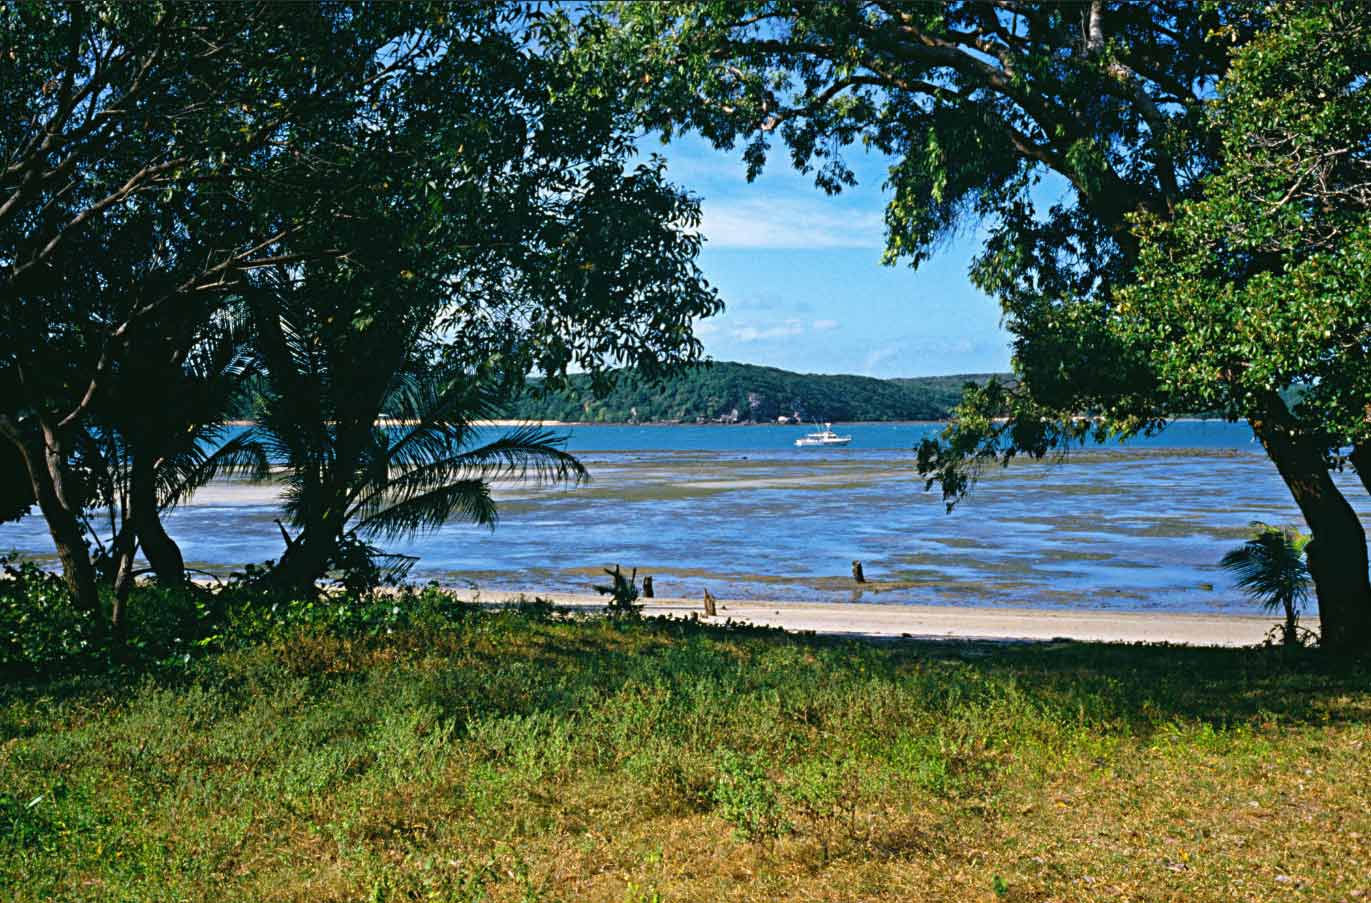 A photo of a green grassy beach with trees on either side allowing a view of the water and a boat. The landmass behind the boat is covered in densely populated trees.